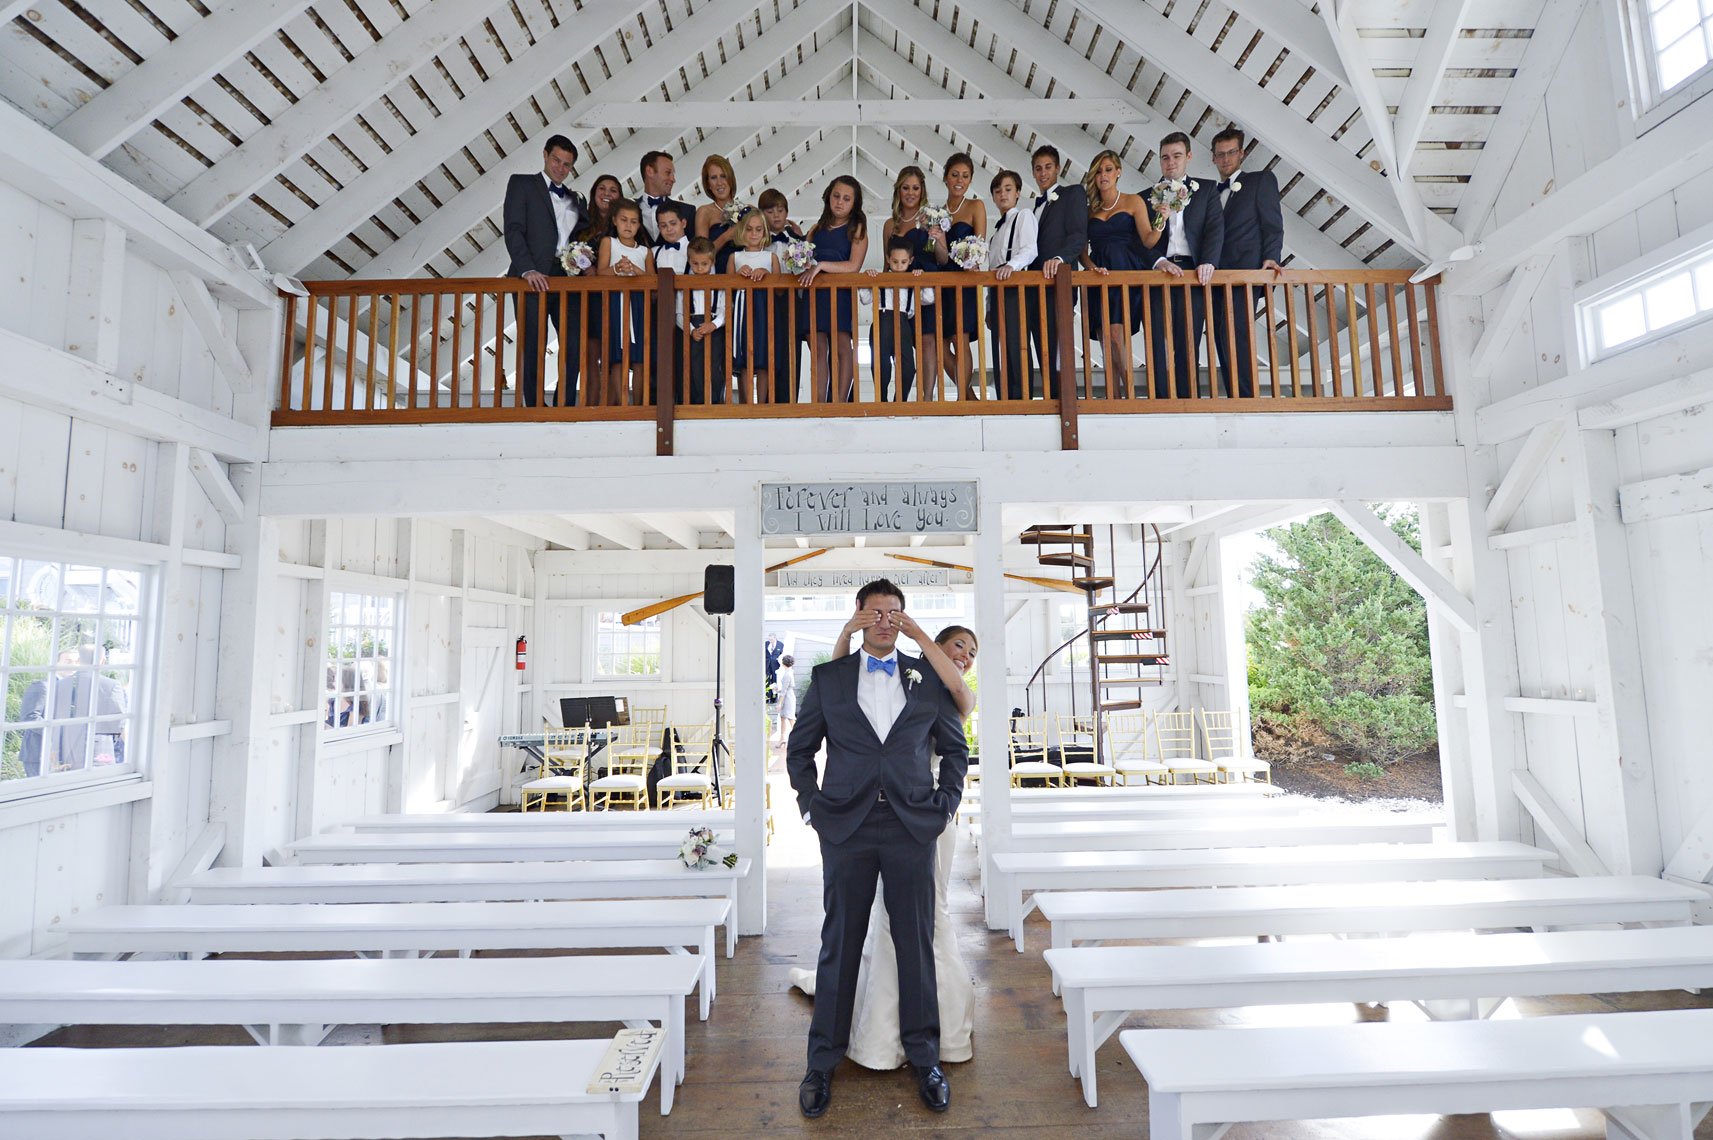 bonnetislandwedding-009